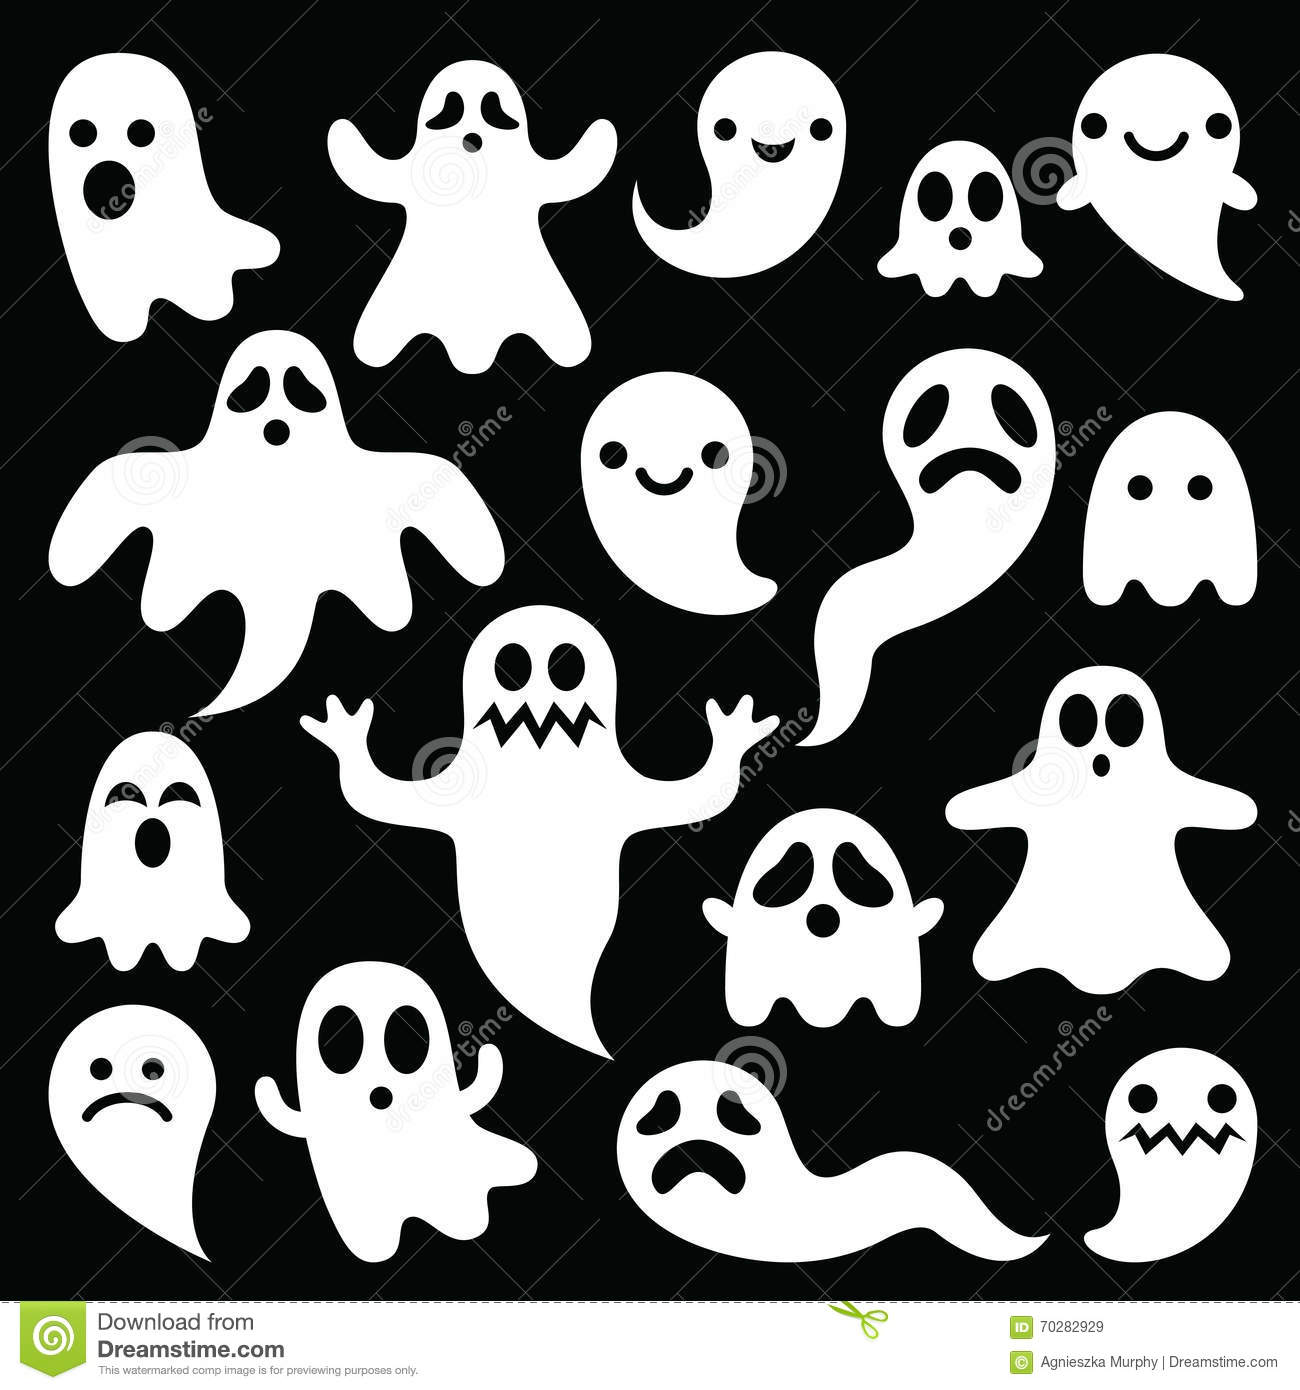 scary white ghosts design on black background halloween celebration royalty free stock images - Halloween Design